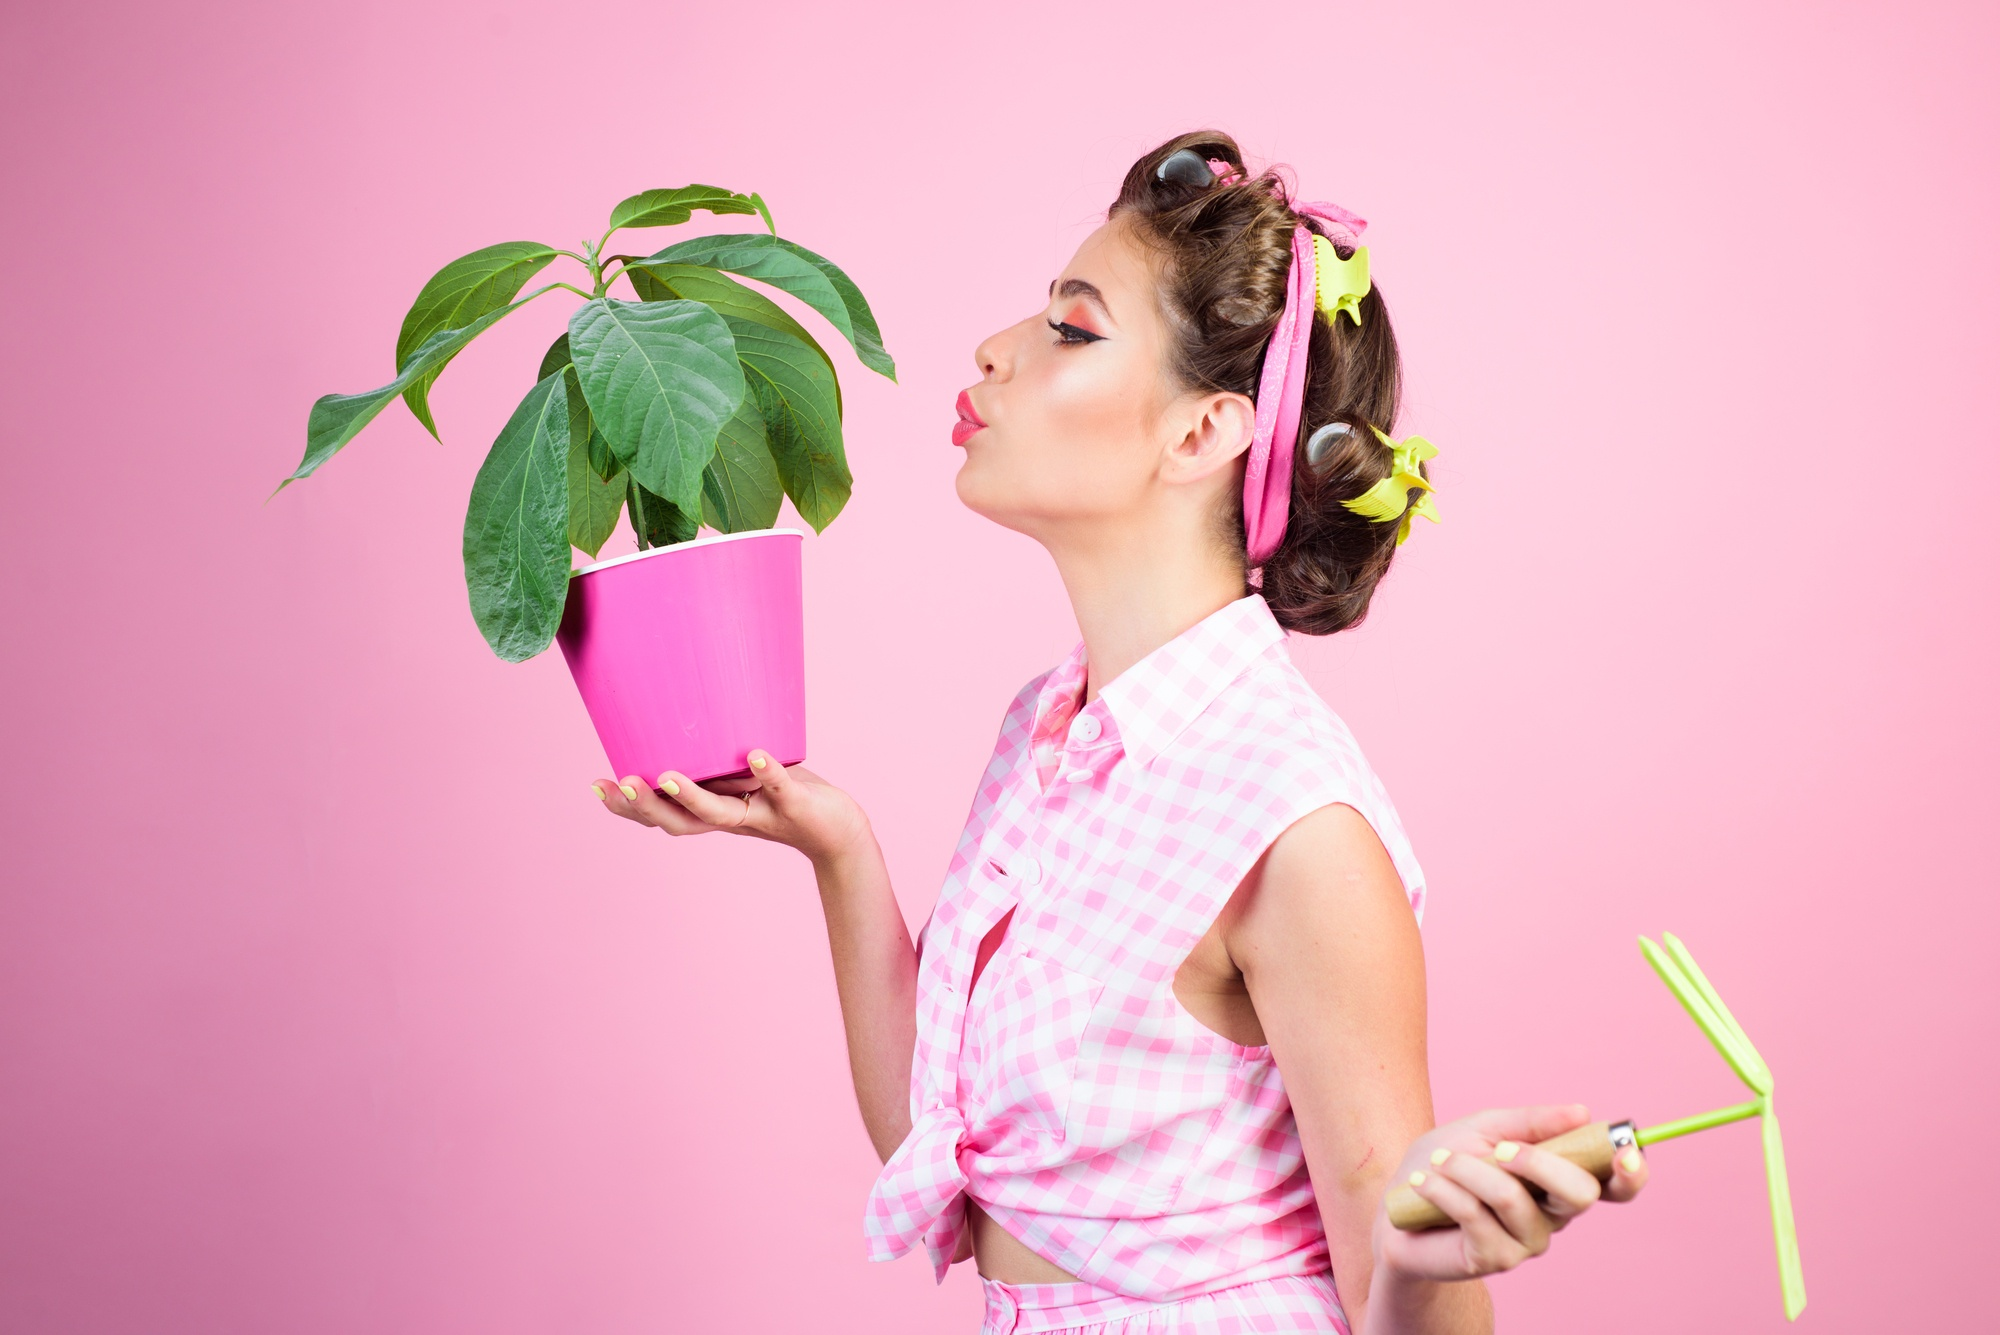 retro woman growing plants. Garden. pinup girl with fashion hair. greenhouse worker or gardener. spring. pin up woman with trendy makeup. pretty girl in vintage style. Woman with potted plant